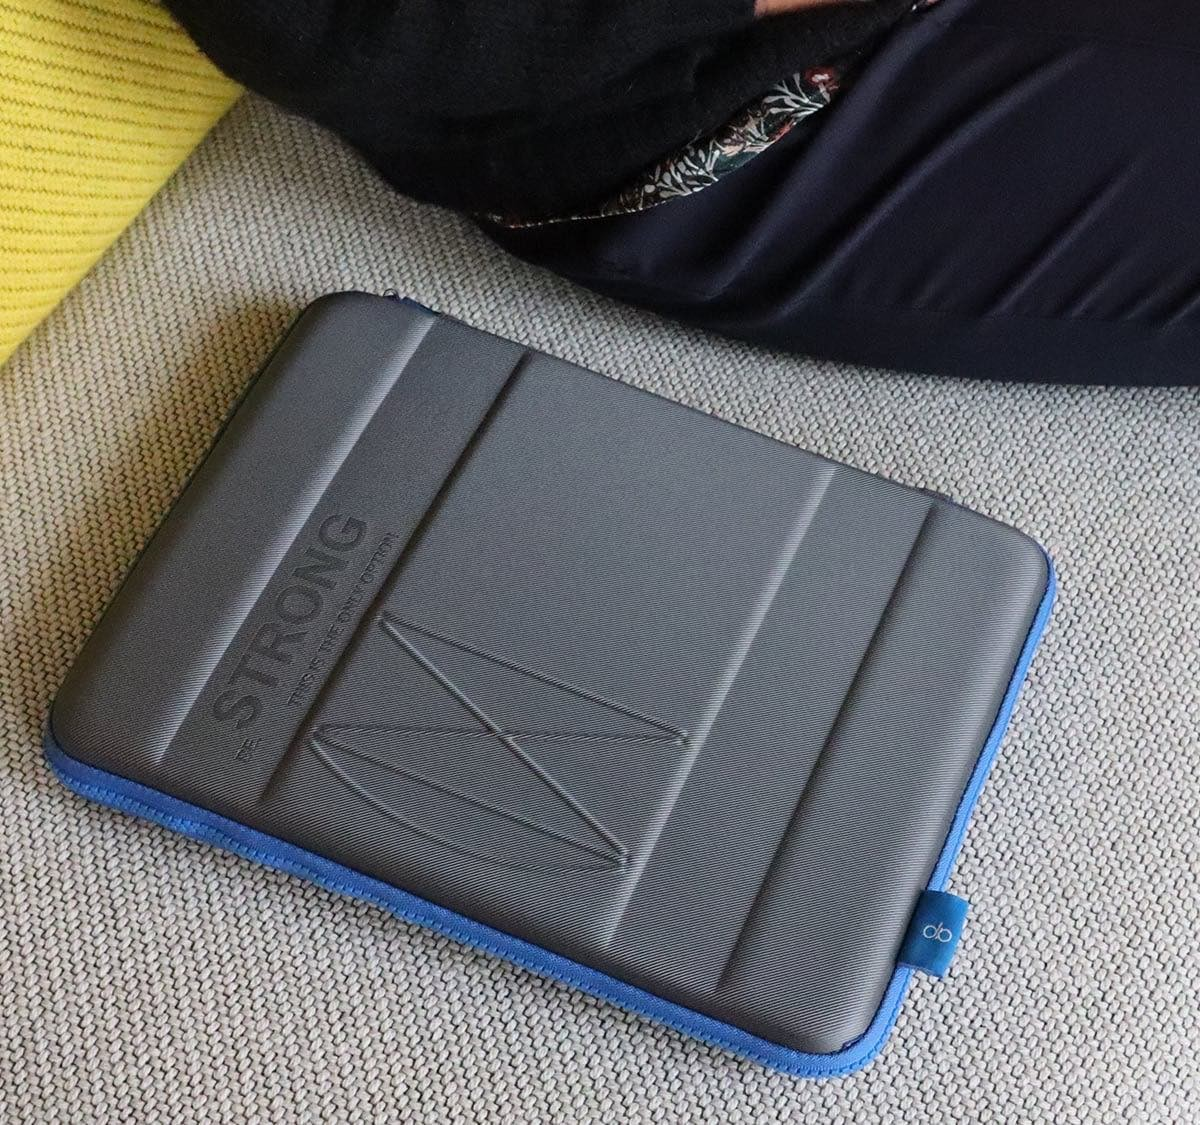 GINSleeve Compact Protective Case guards your laptop from the shocks of life